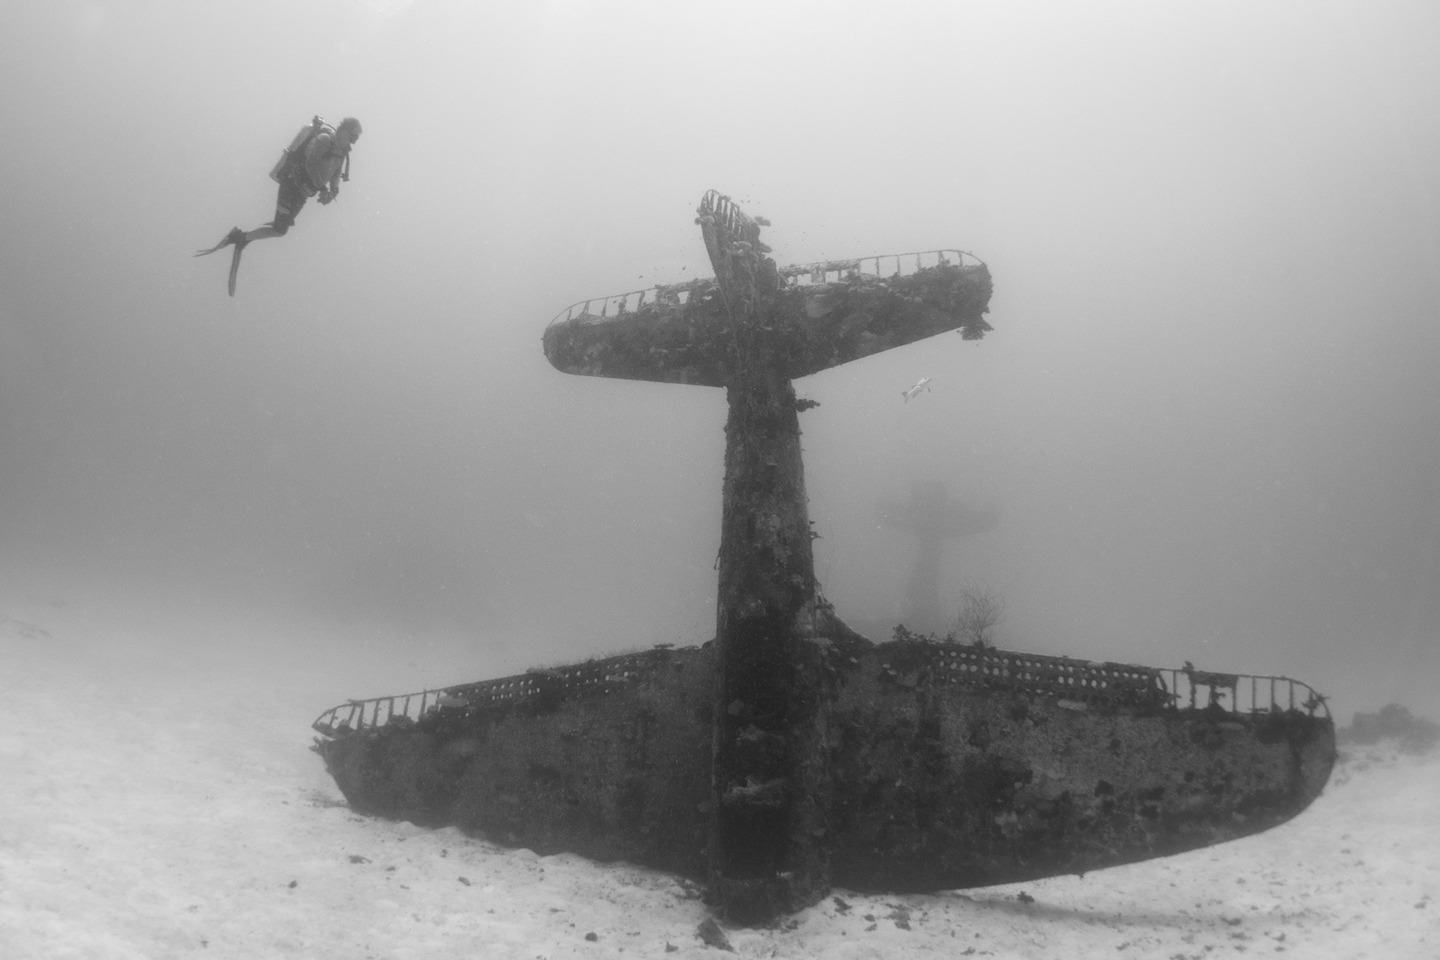 The Pacific Ocean Bed Is A Graveyard For World War II Planes